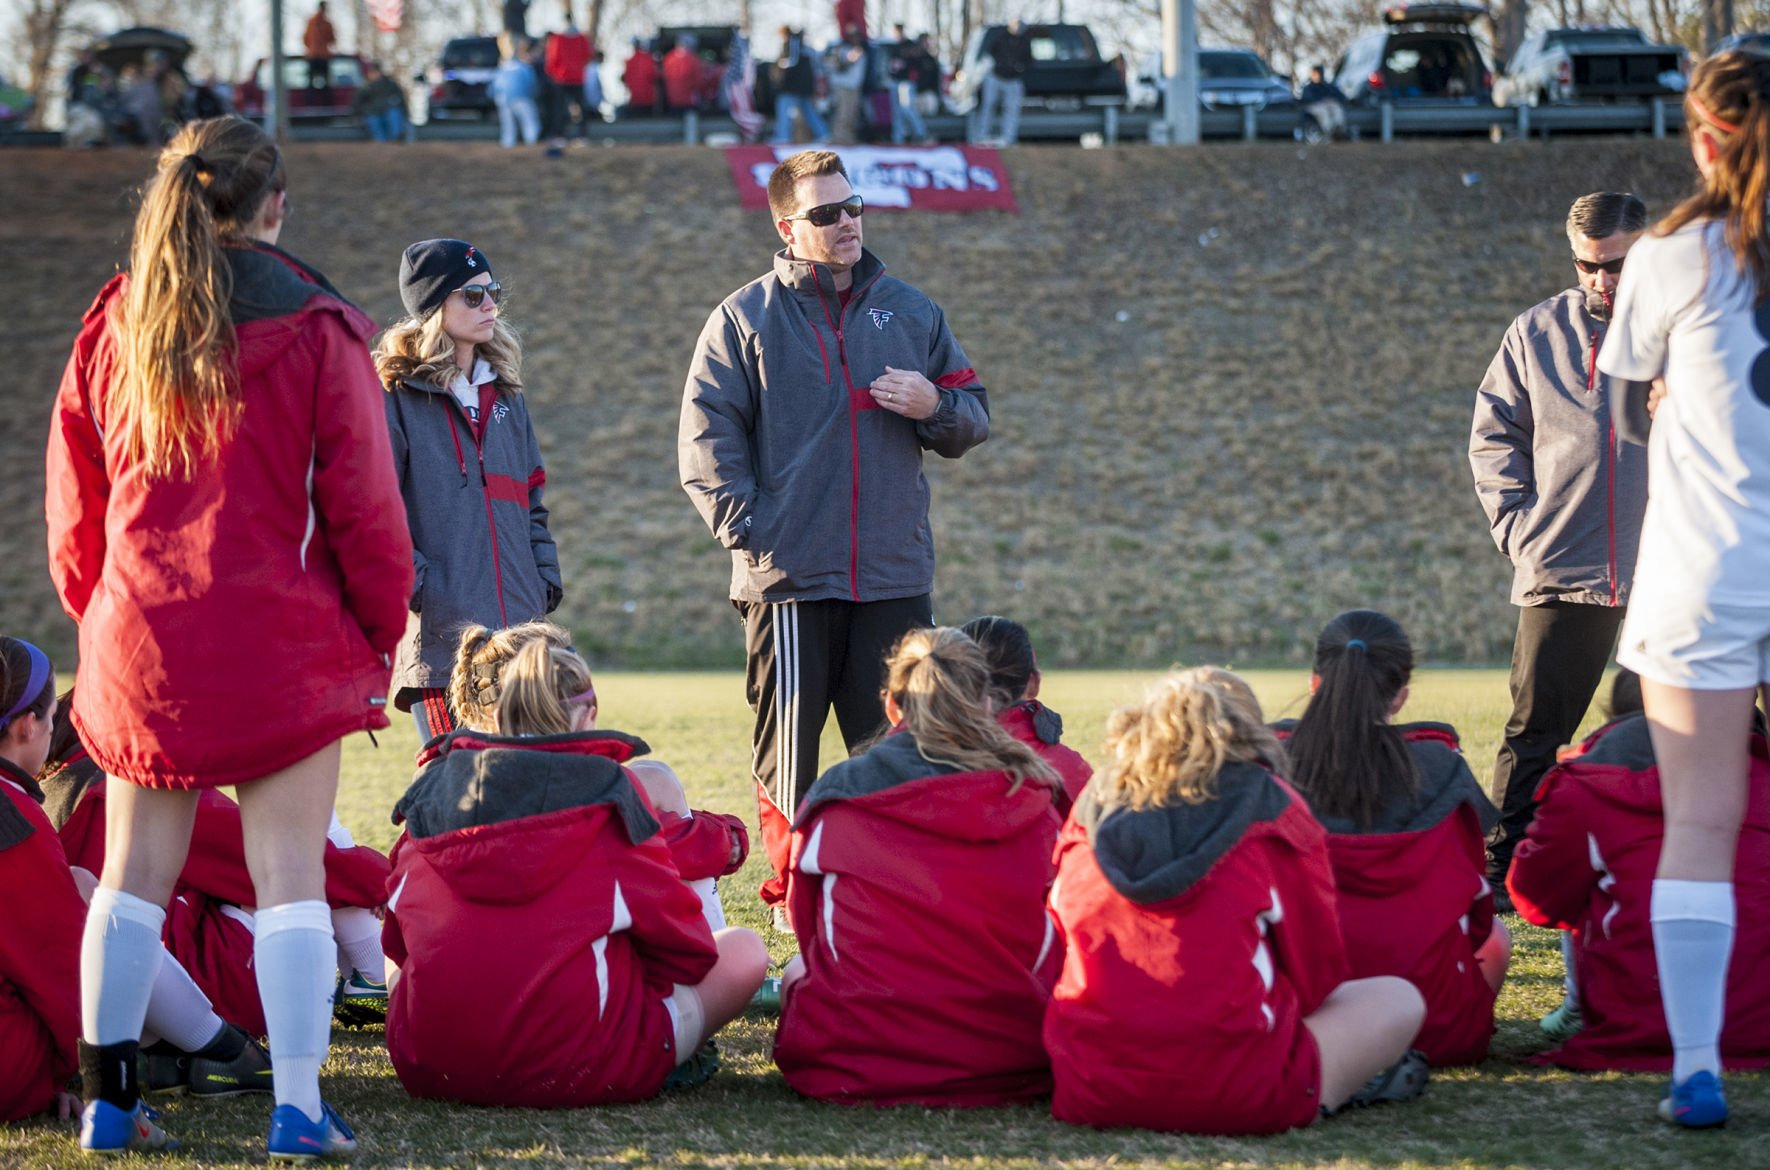 David Marcincavage is the new coach for Forbush girls soccer. He replaces Kenan James, who was suspended in June. | Winston Salem Journal